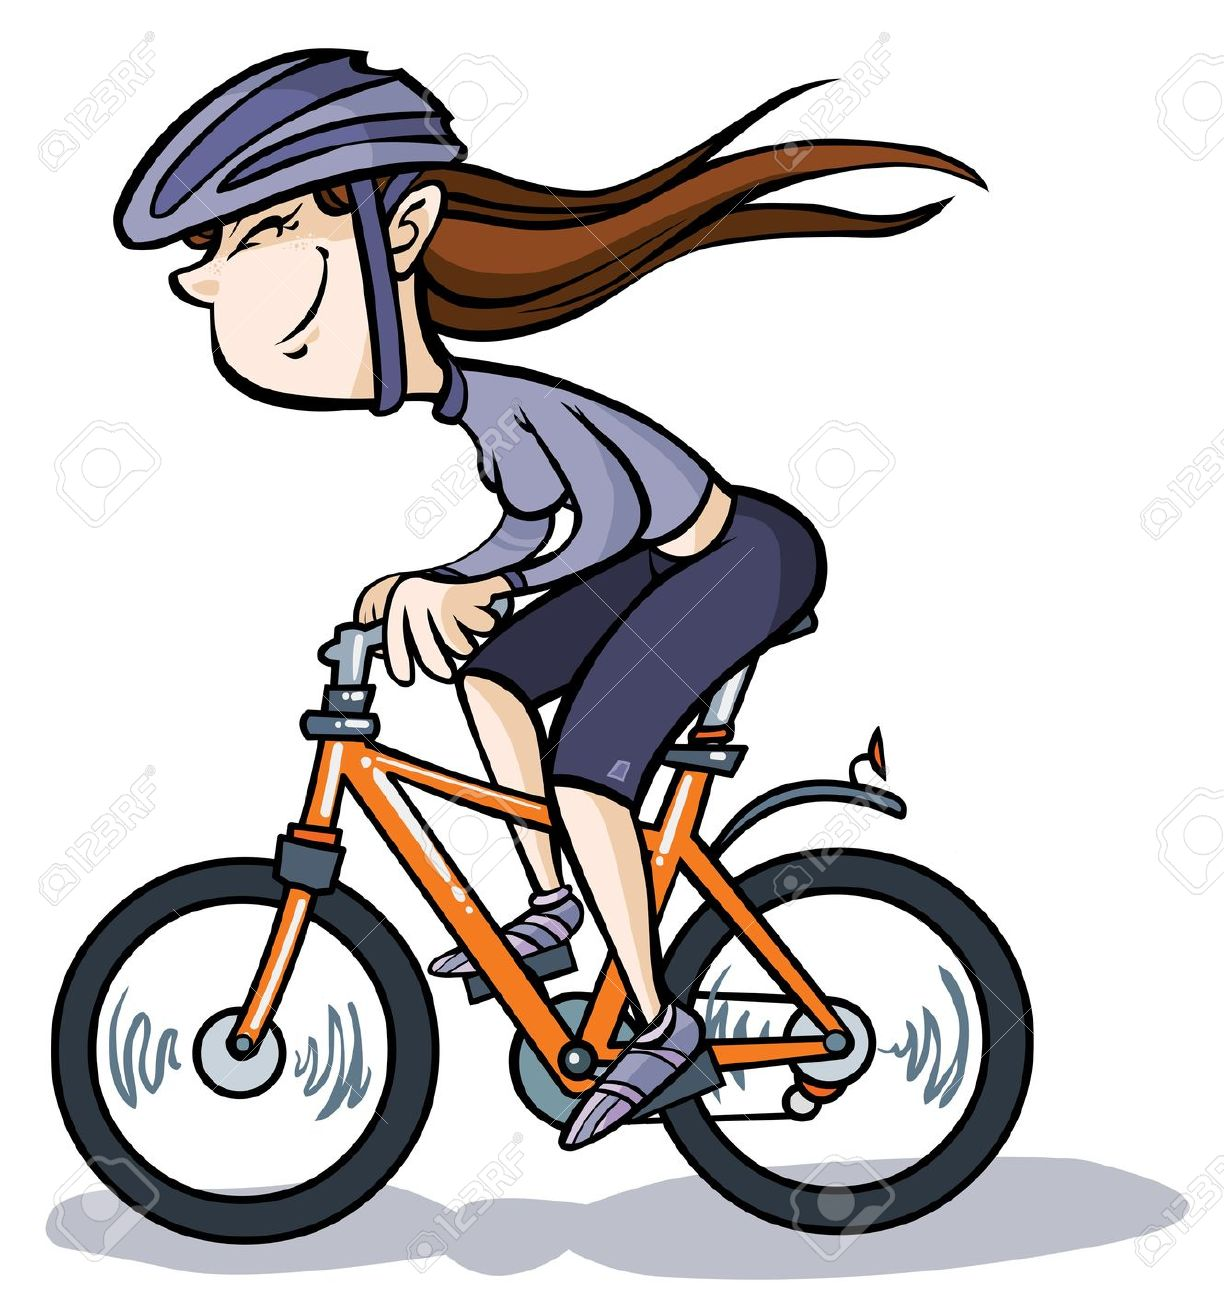 Cartoon Girl On Bike Royalty Free Cliparts, Vectors, And Stock.